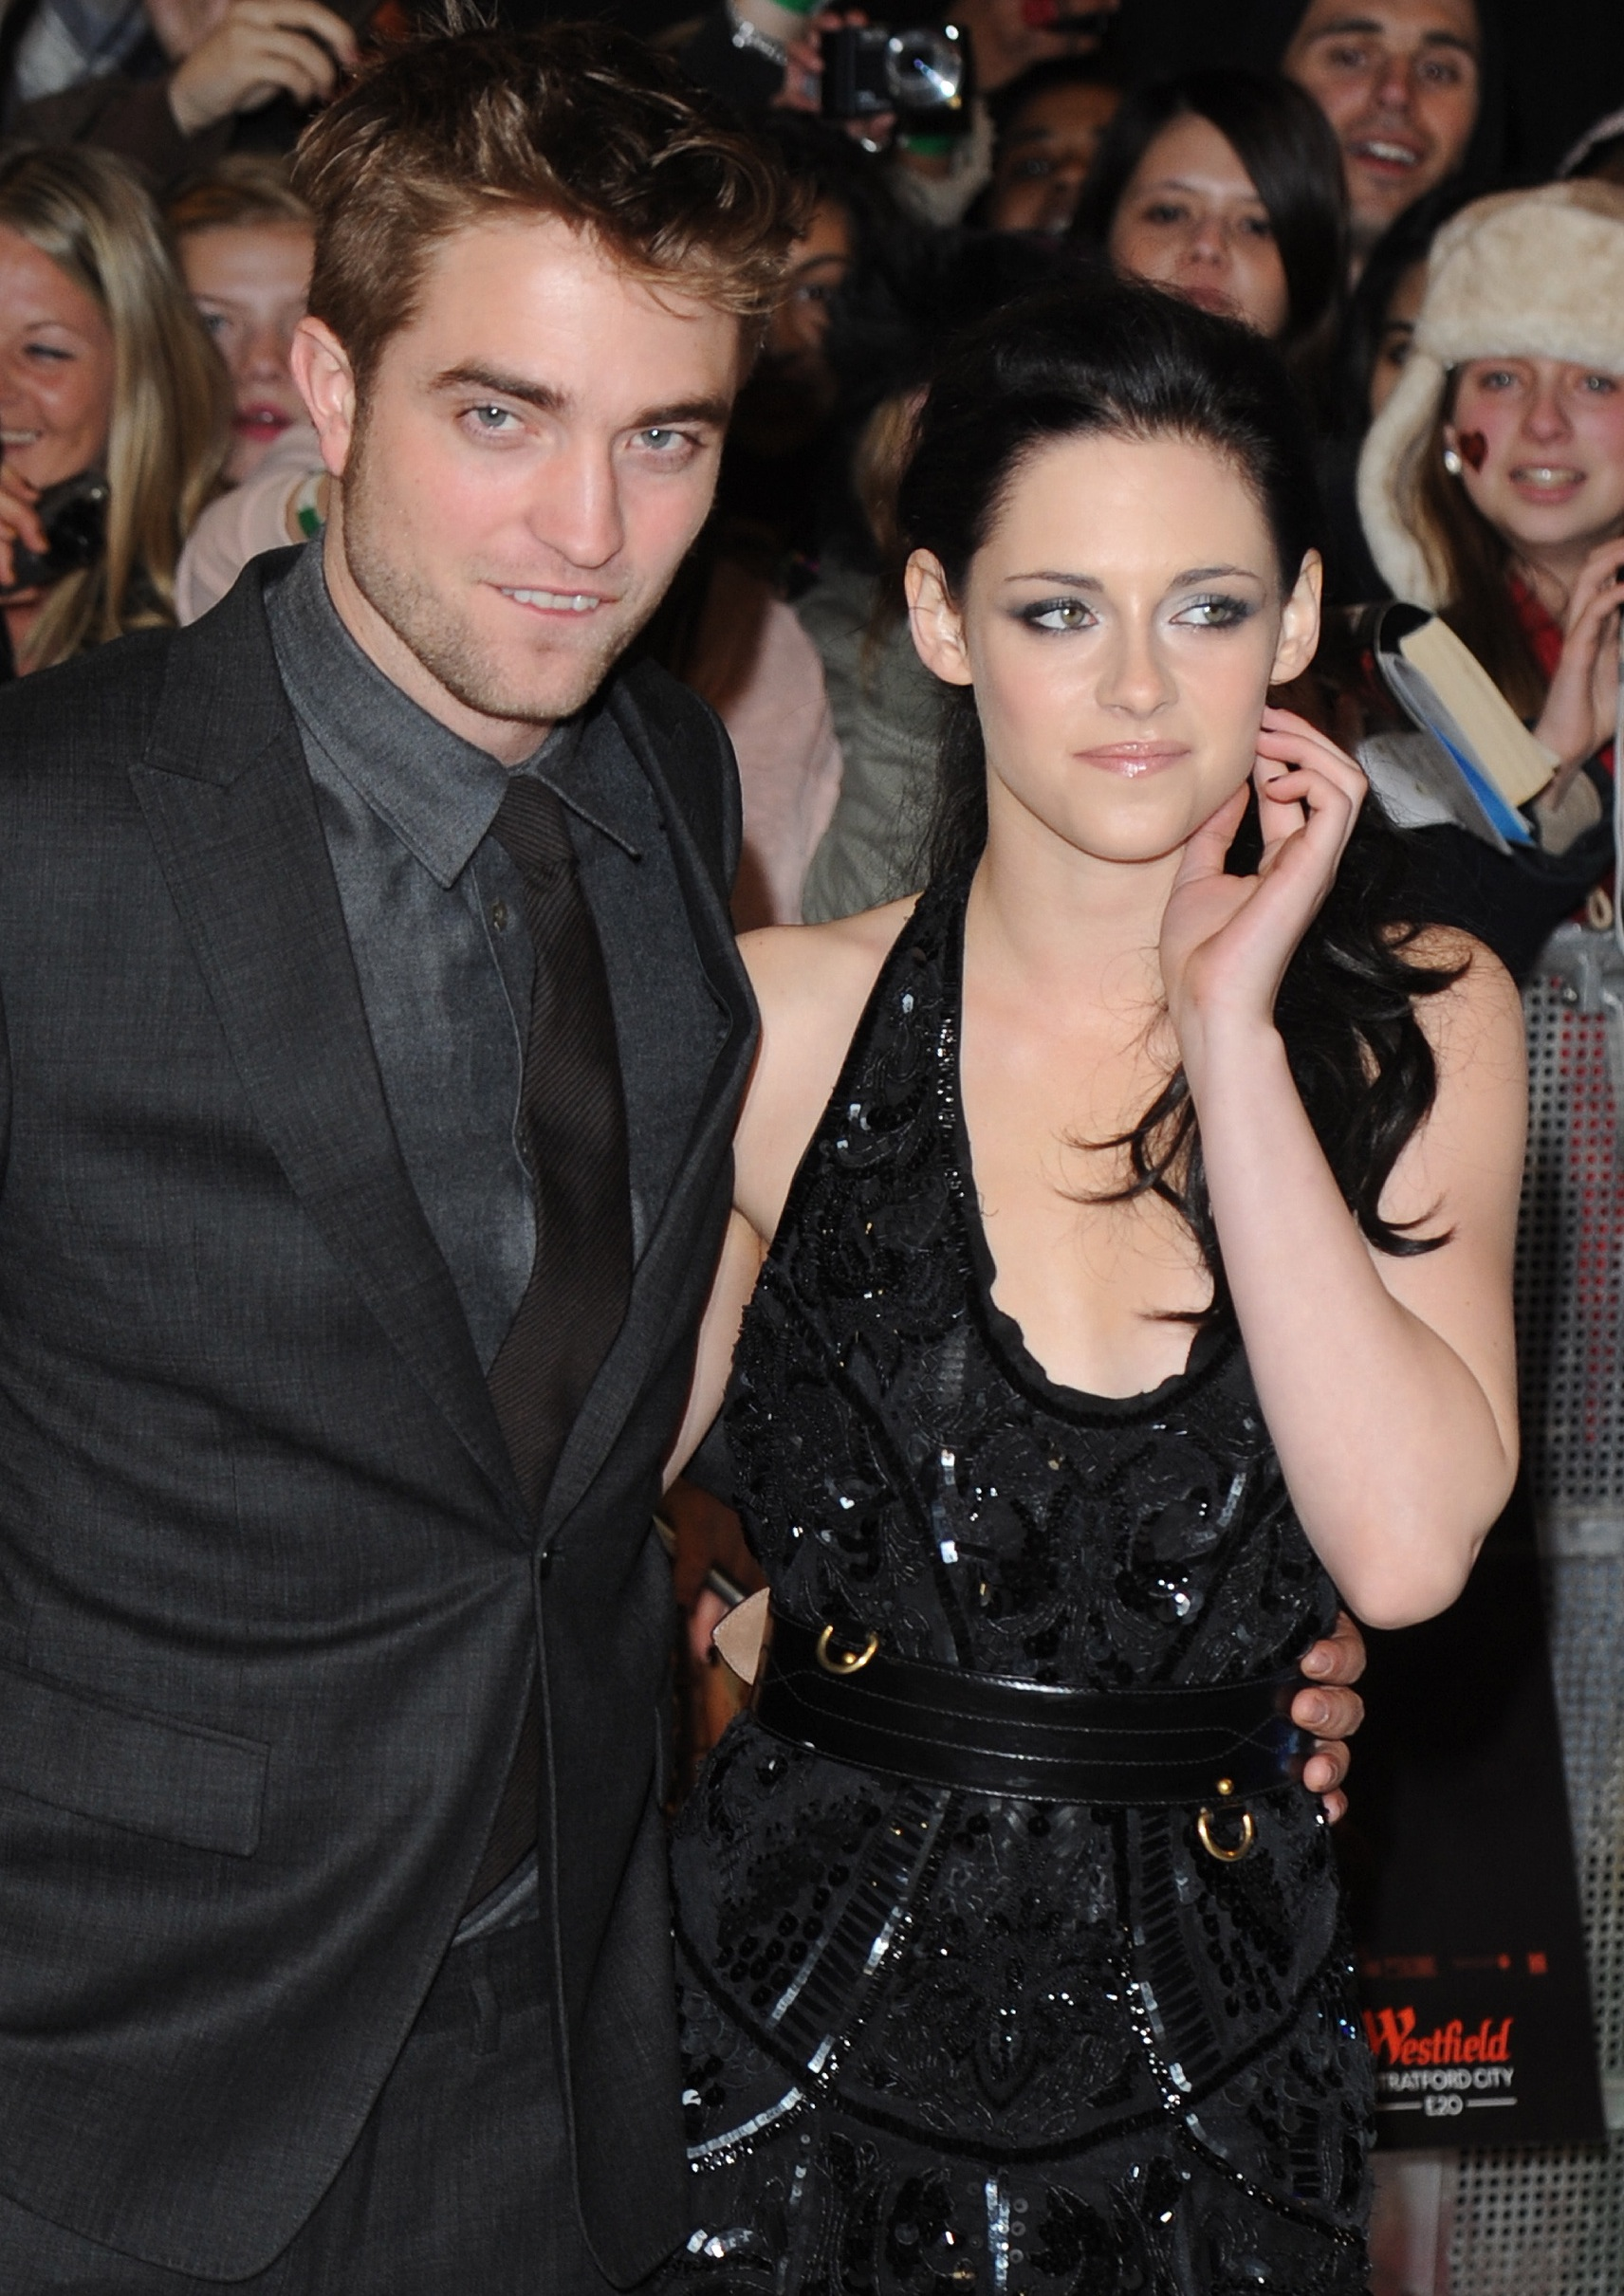 robert pattinson and kristen stewart. ROBERT PATTINSON AND KRISTEN